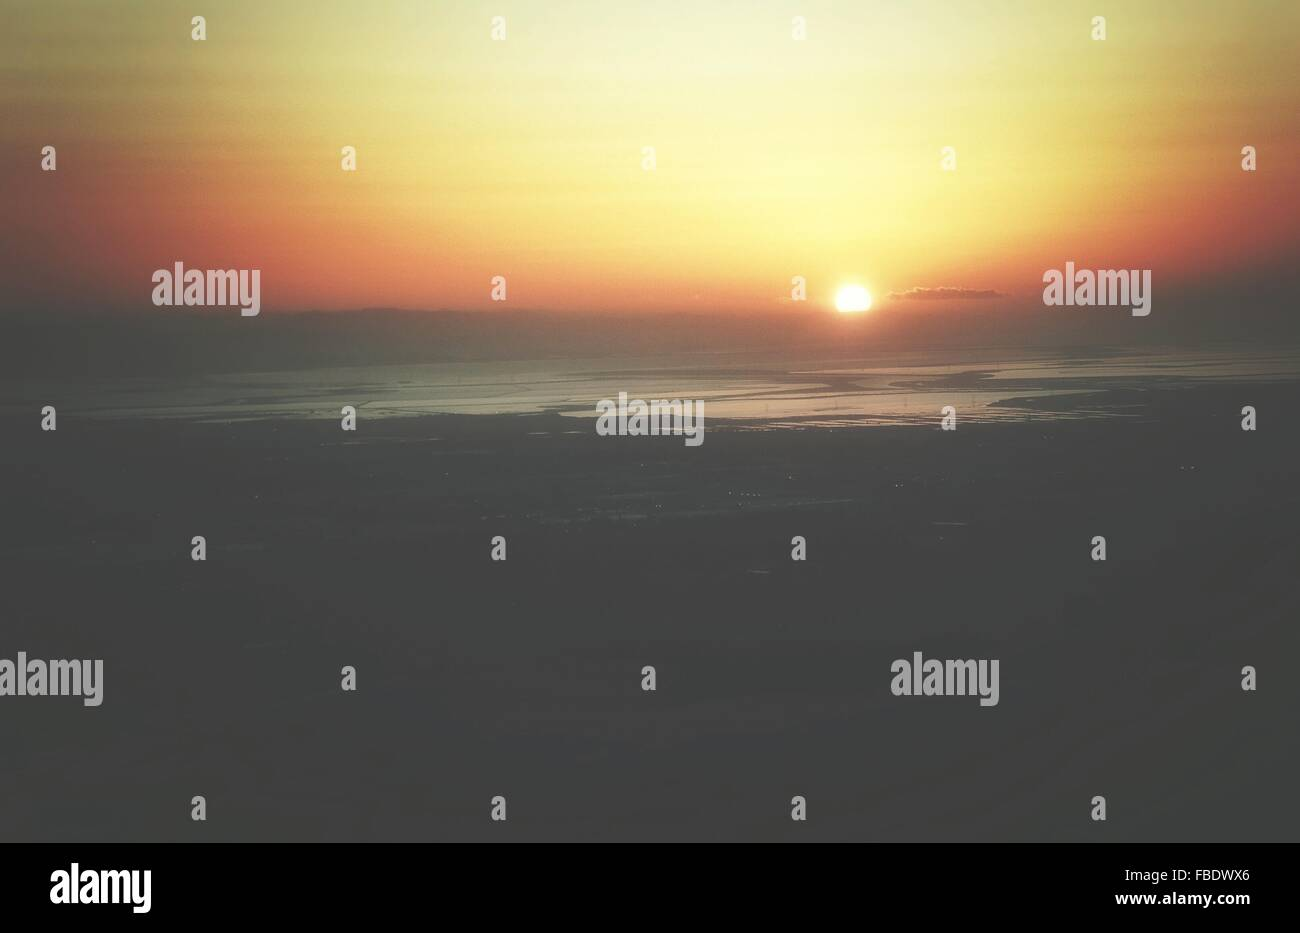 Scenic View Of Beach Against Sky At Sunset - Stock Image